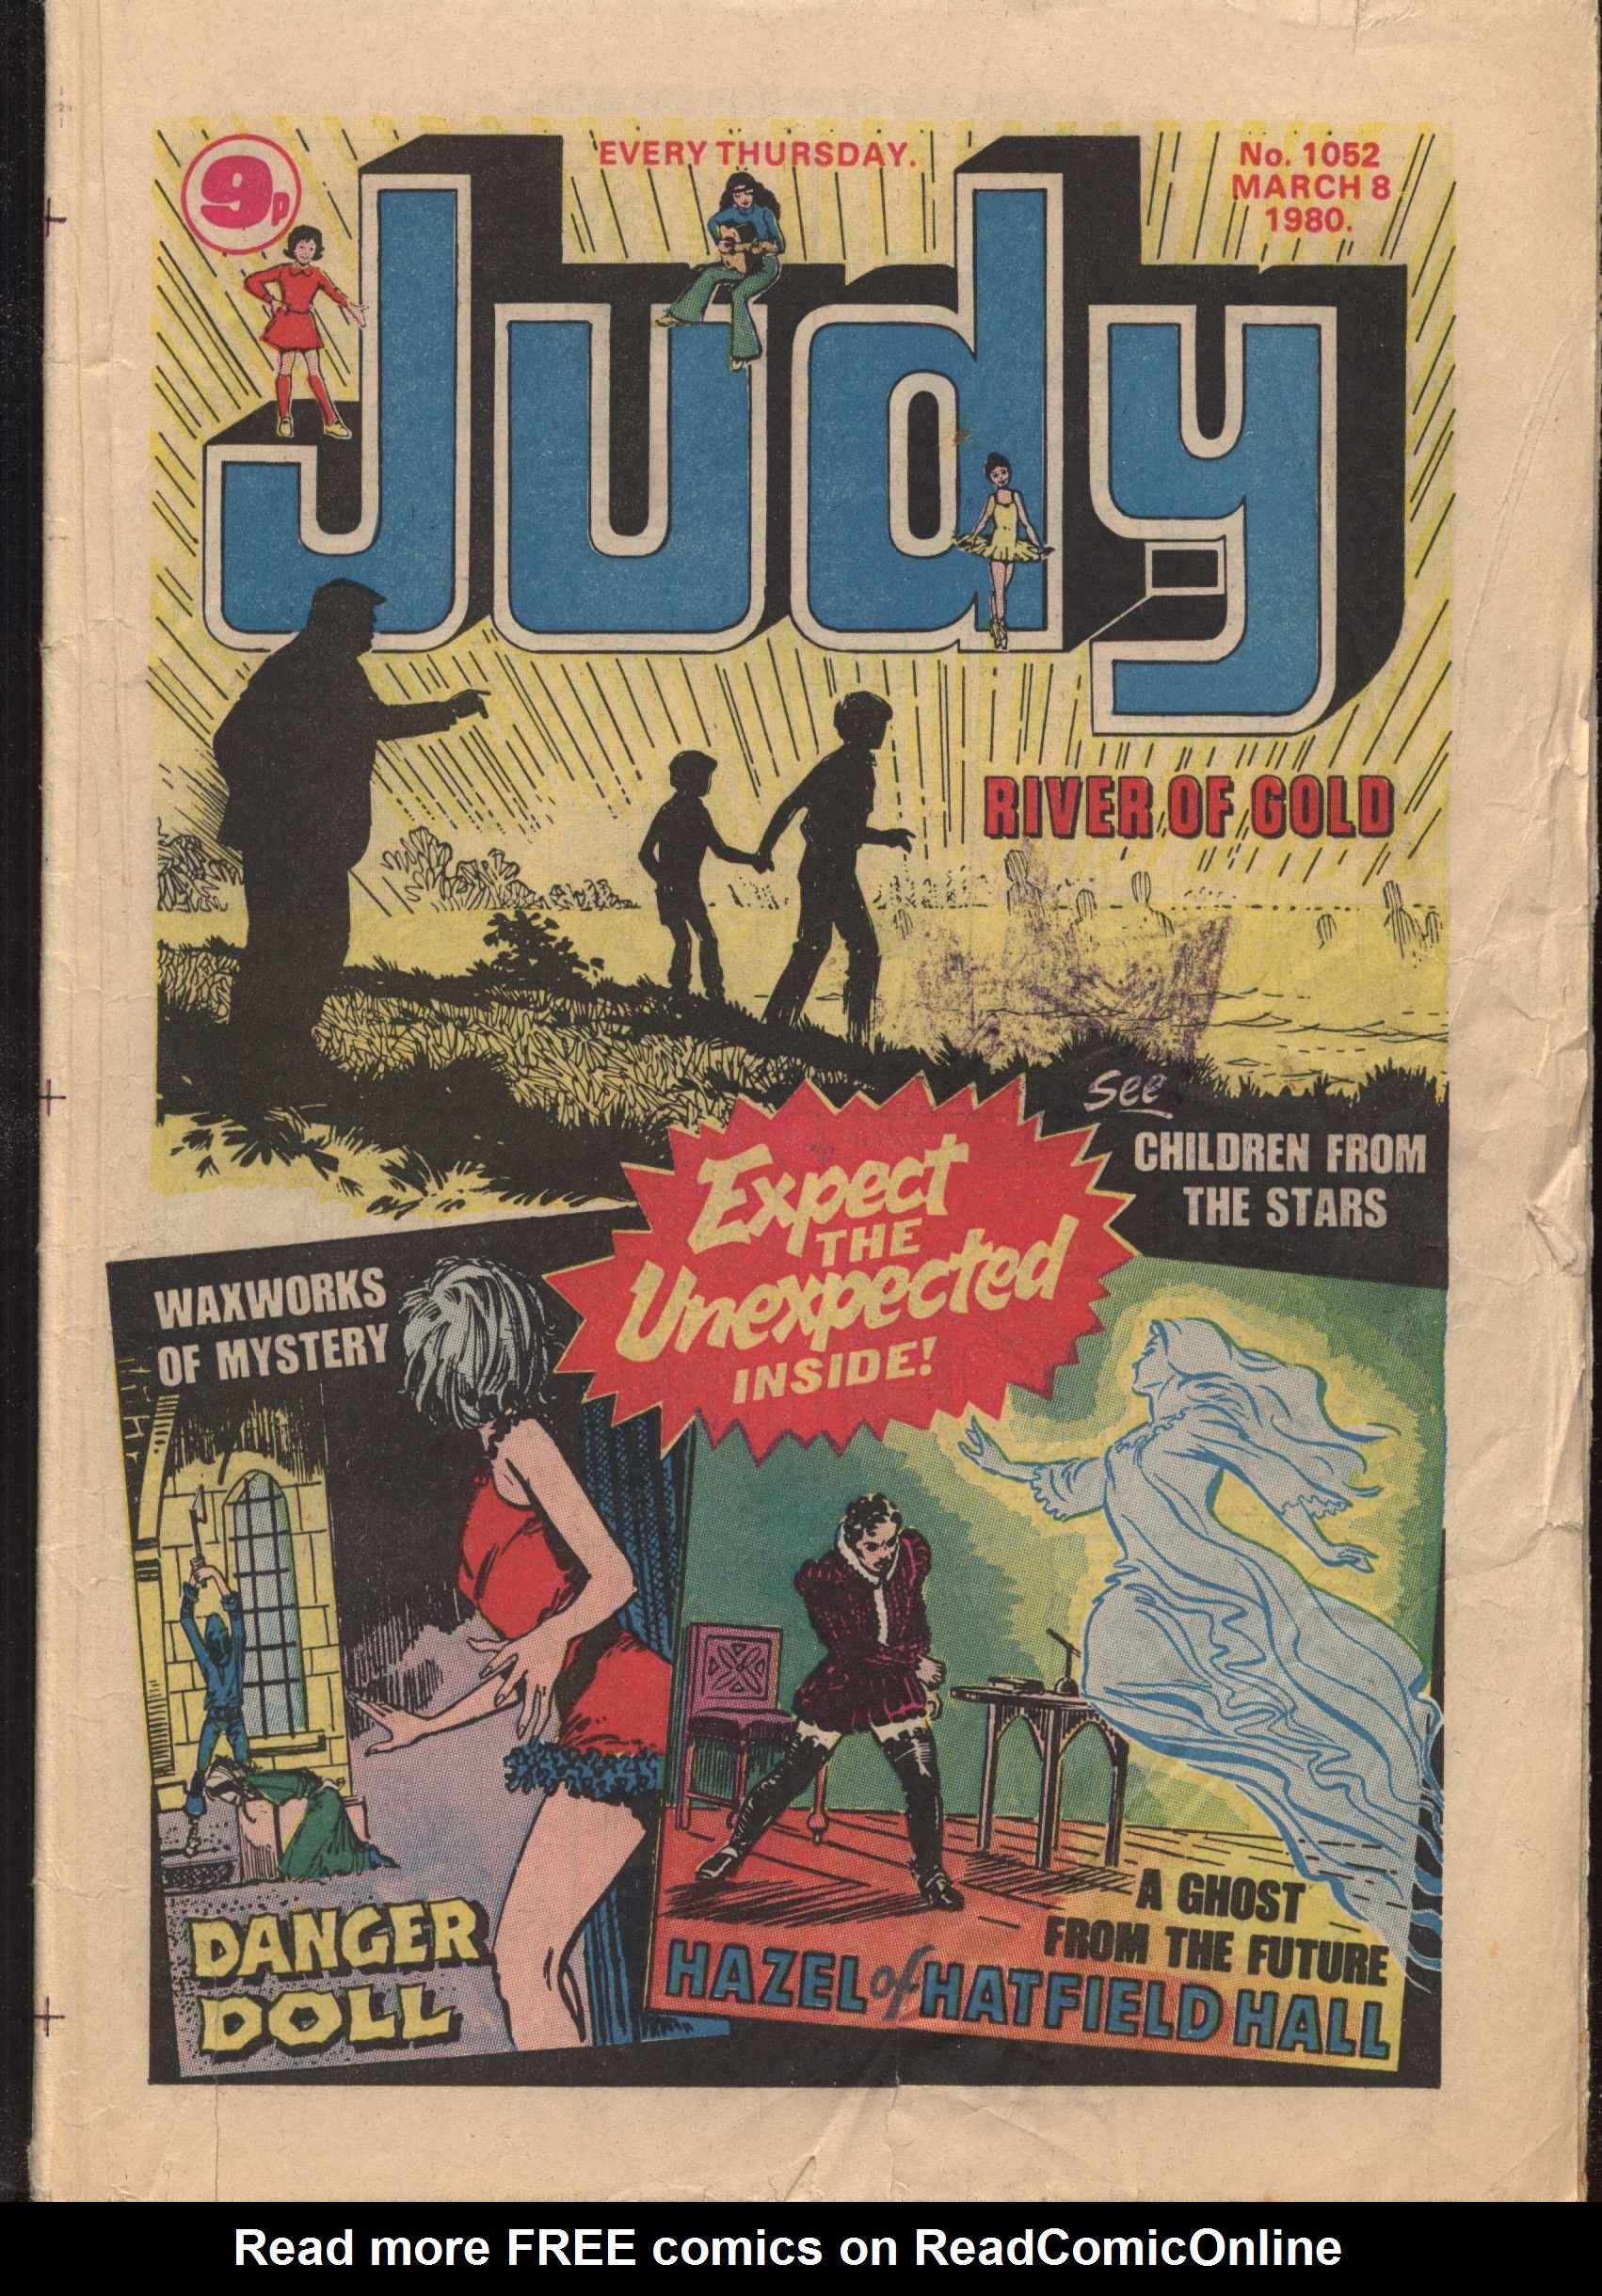 Read online Judy comic -  Issue #1052 - 1